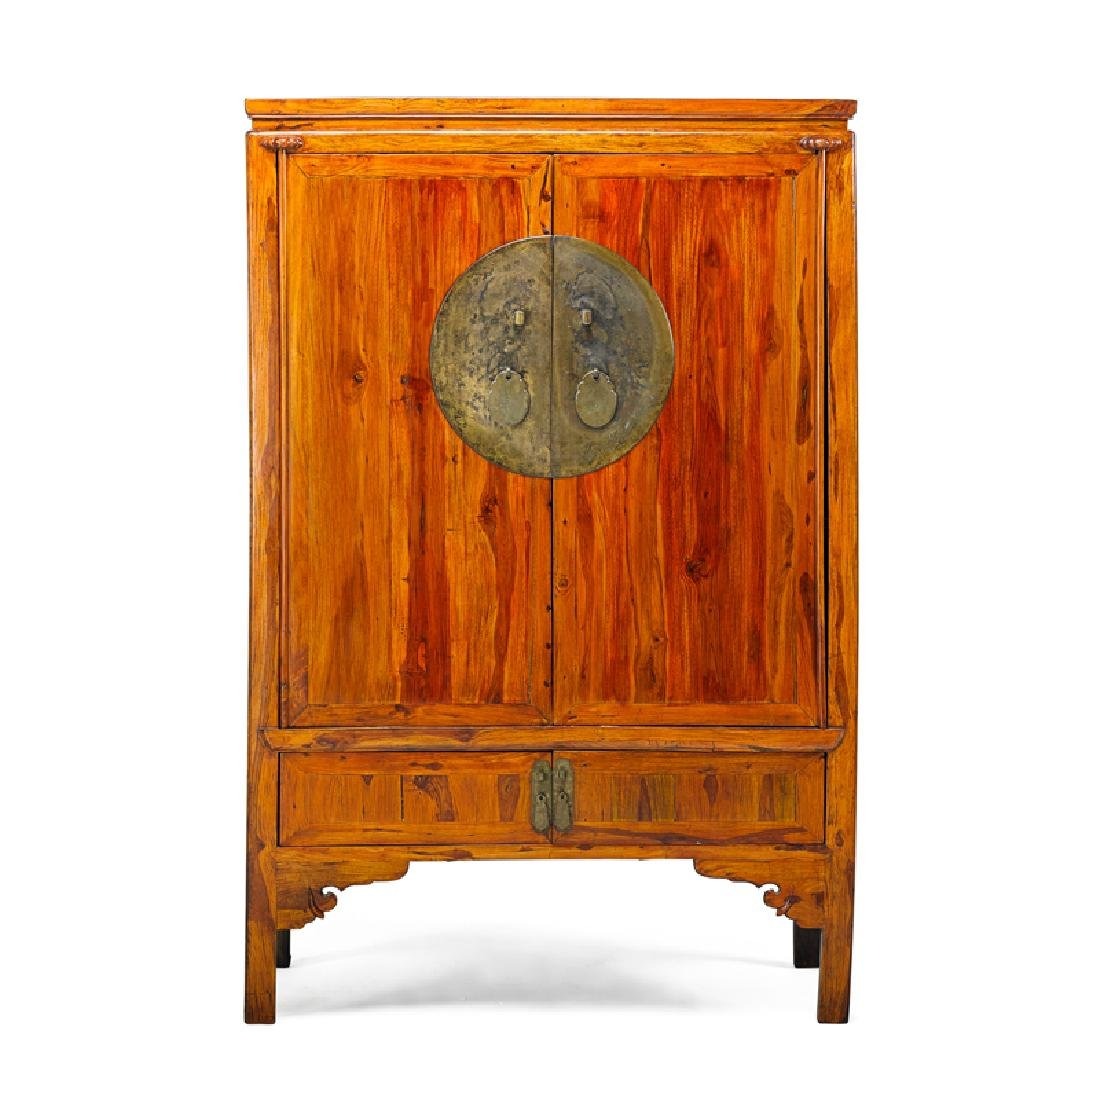 CHINESE HUANGHUALI CABINET